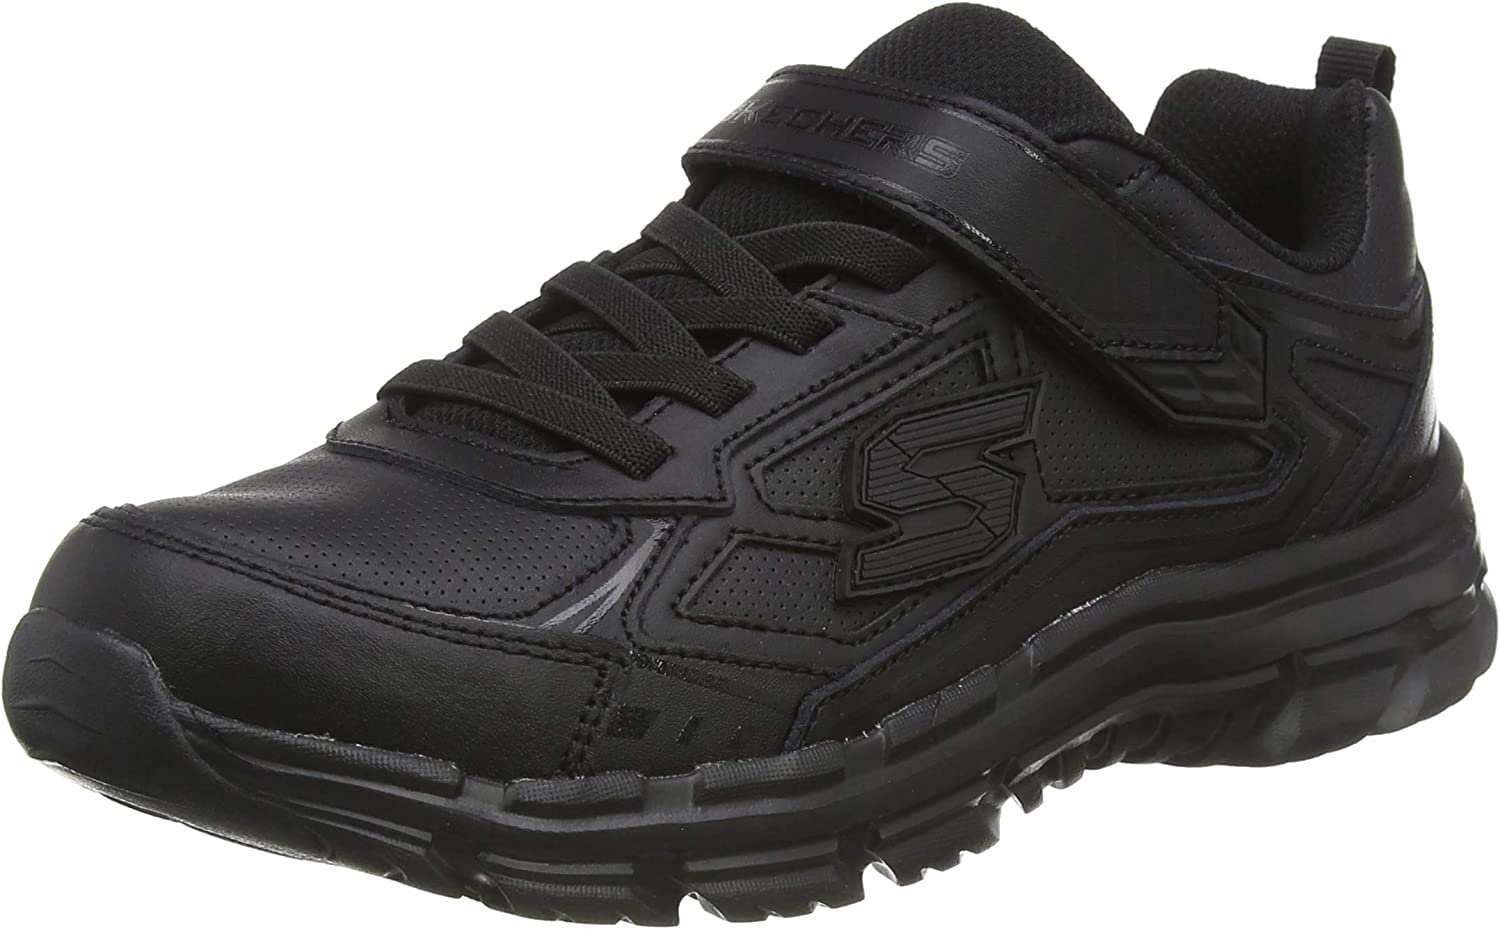 Skechers Kids Unisex-Child specialty shop Sneaker Albuquerque Mall NITRATE-95357L